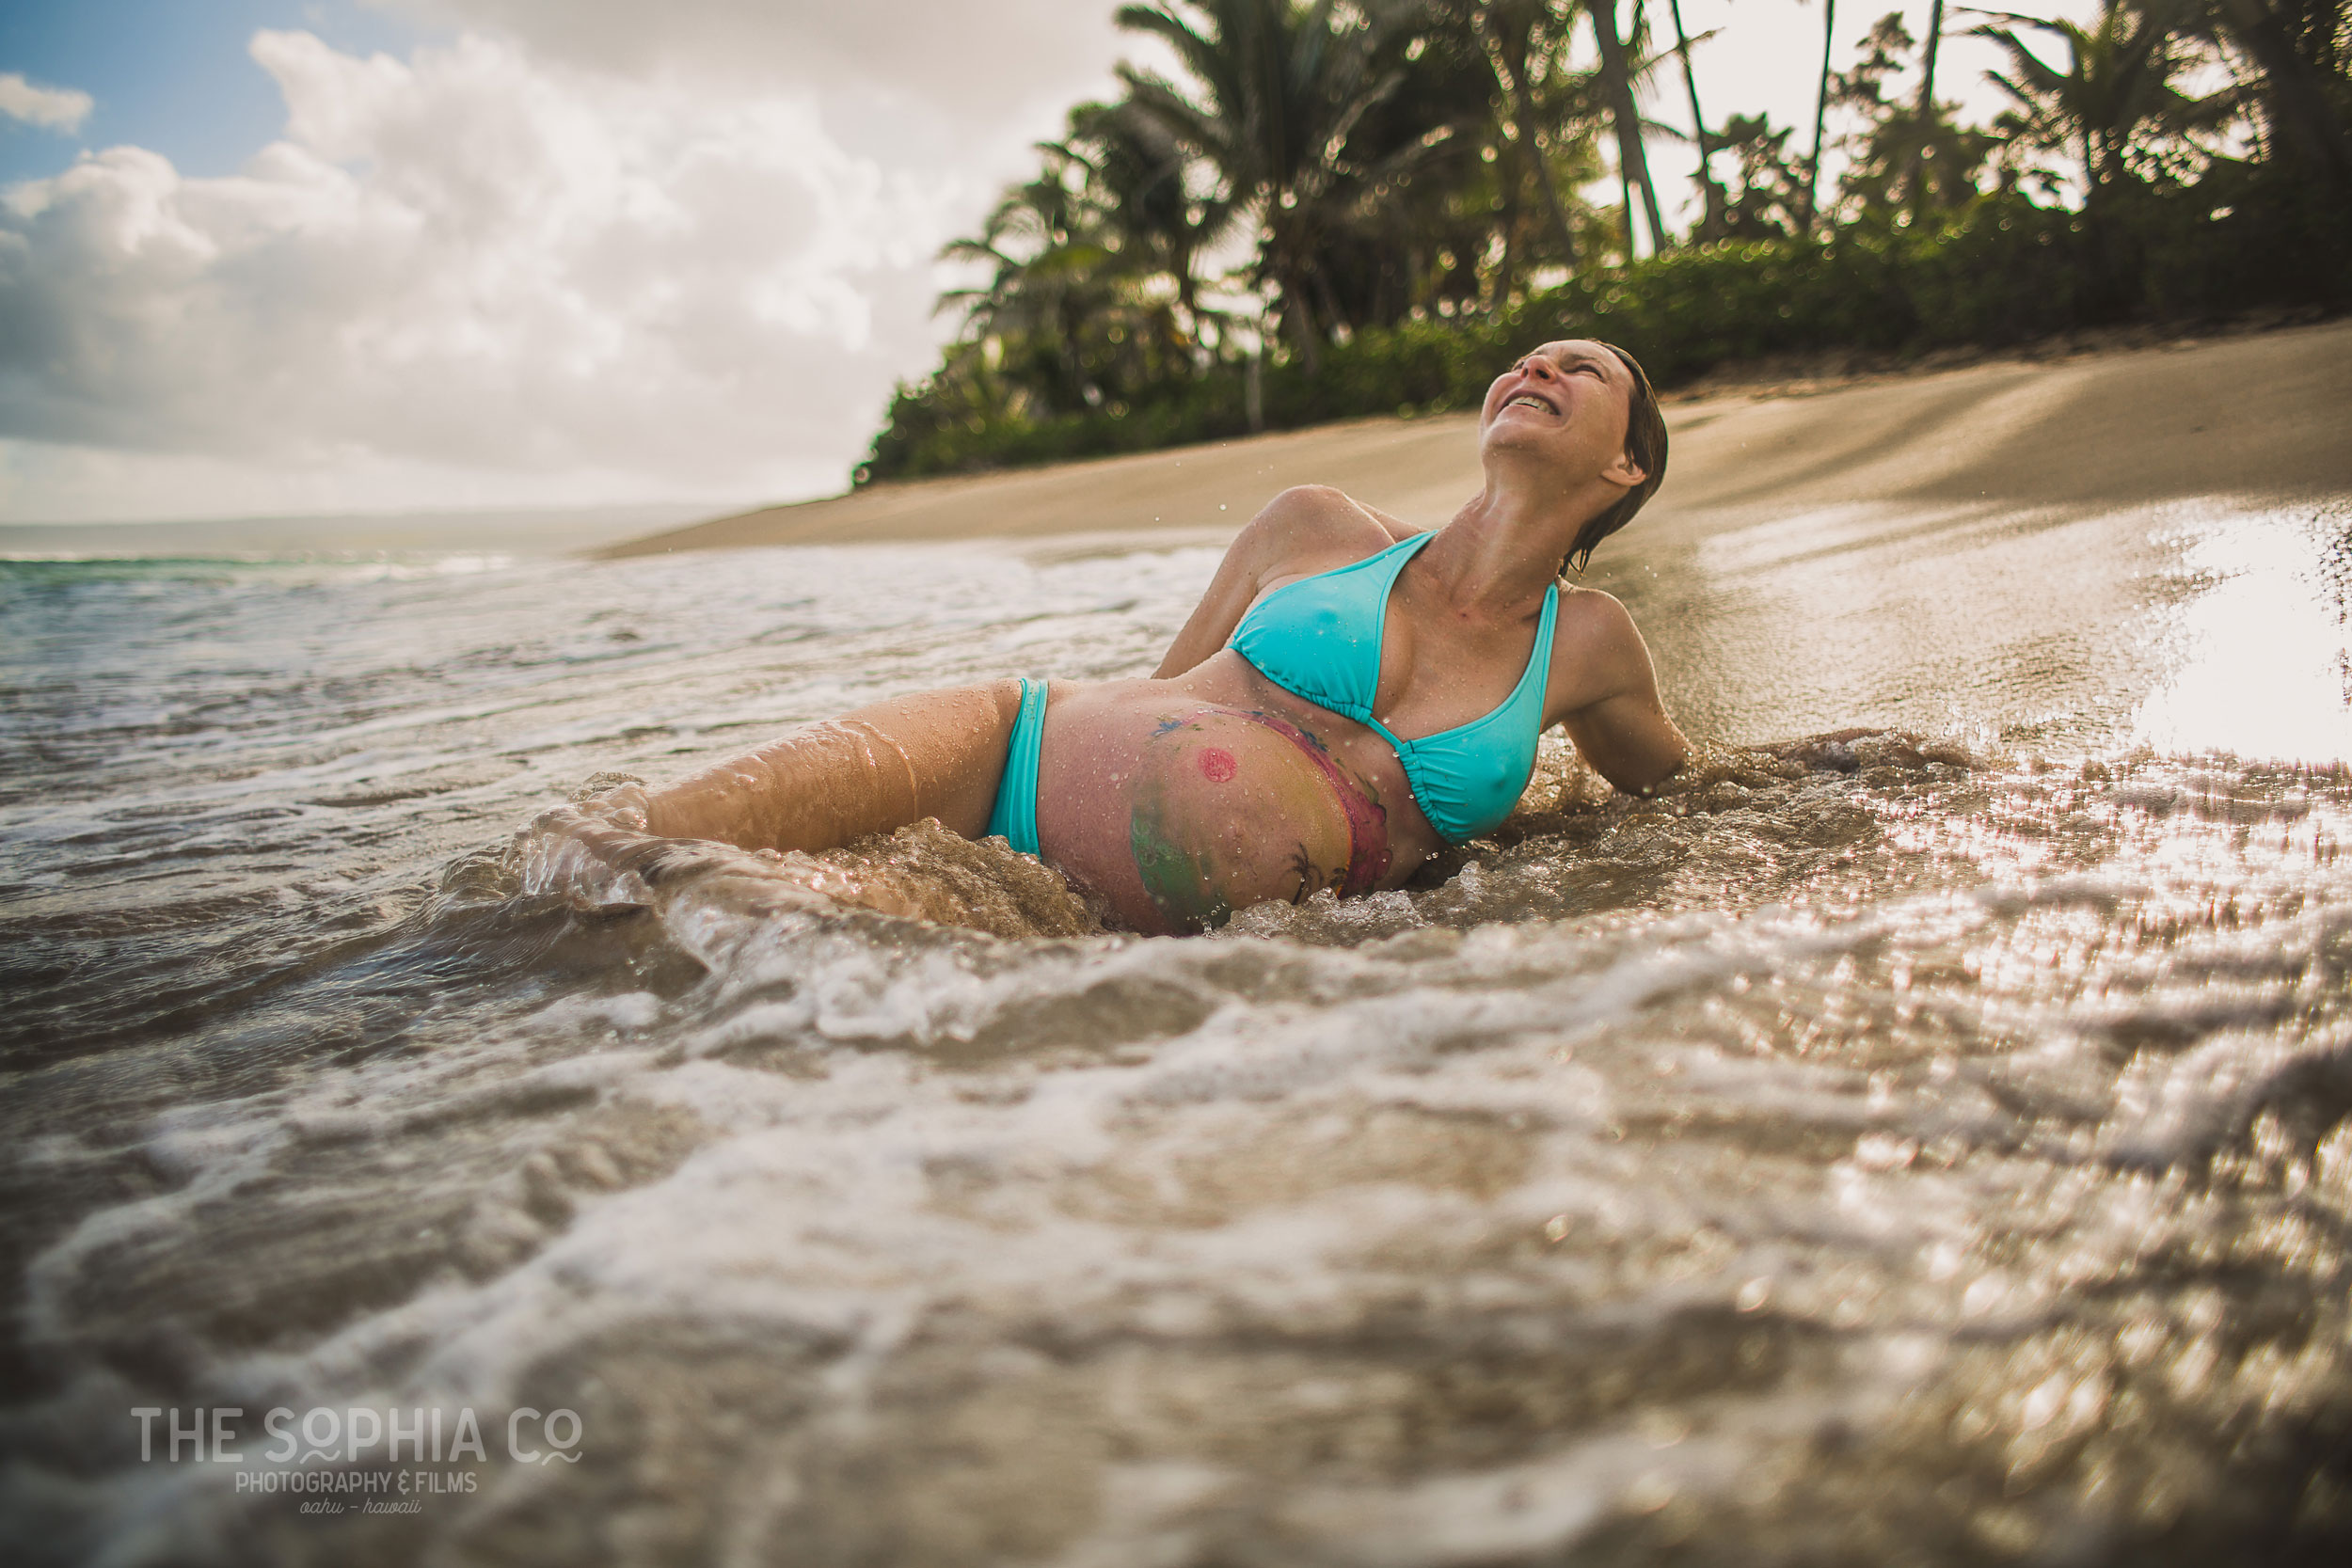 oahu-maternity-photography-the-sophia-co-21.jpg